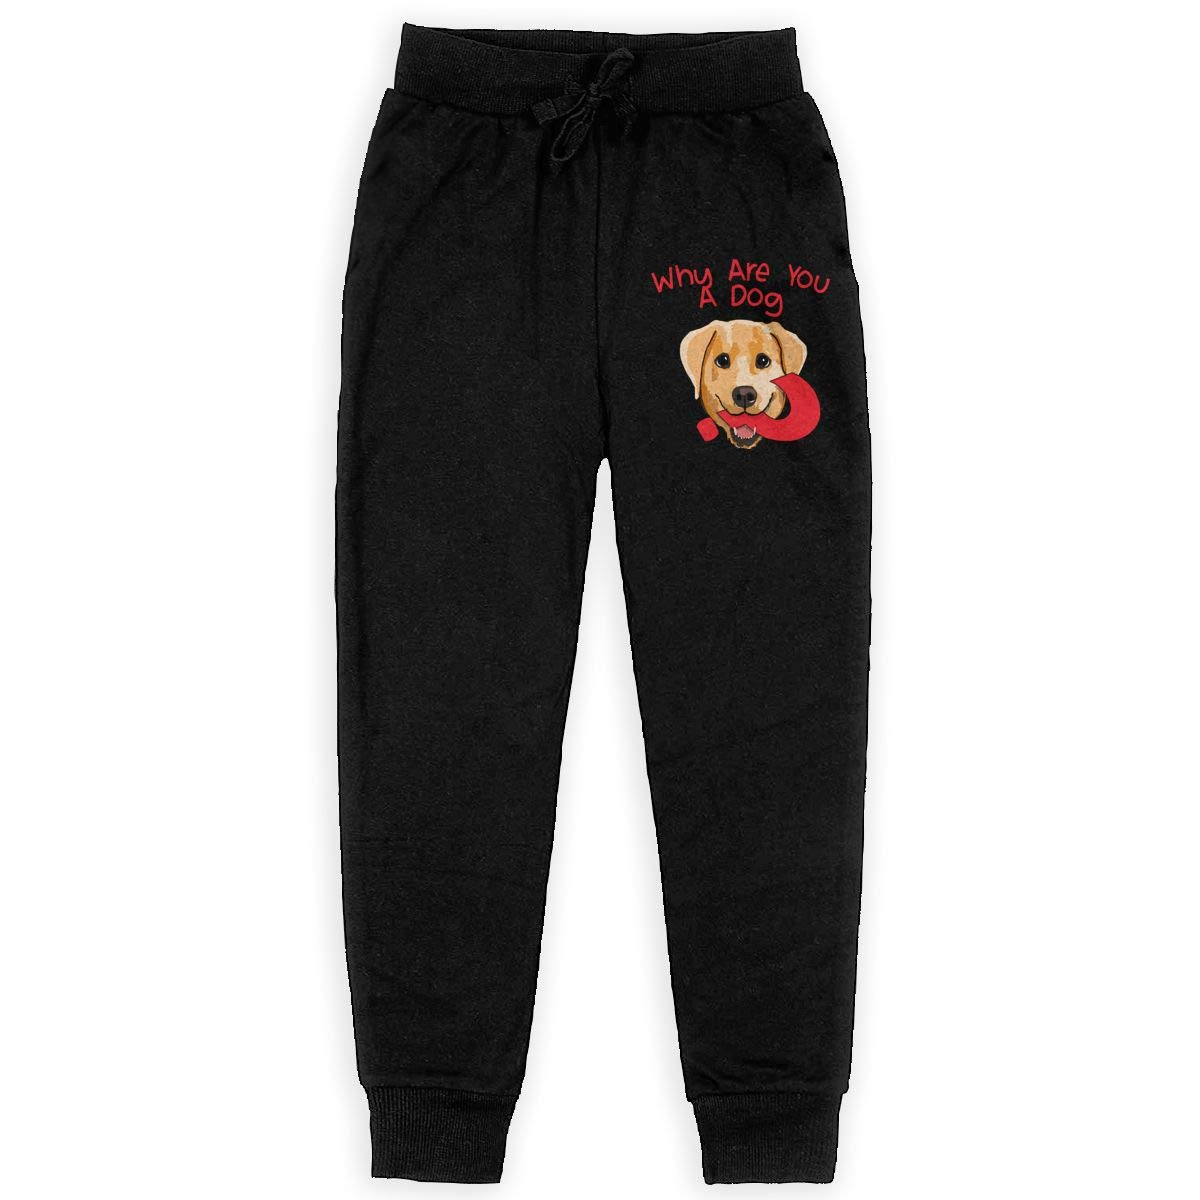 Why are You A Dog Boys Athletic Smart Fleece Pant Youth Soft and Cozy Sweatpants